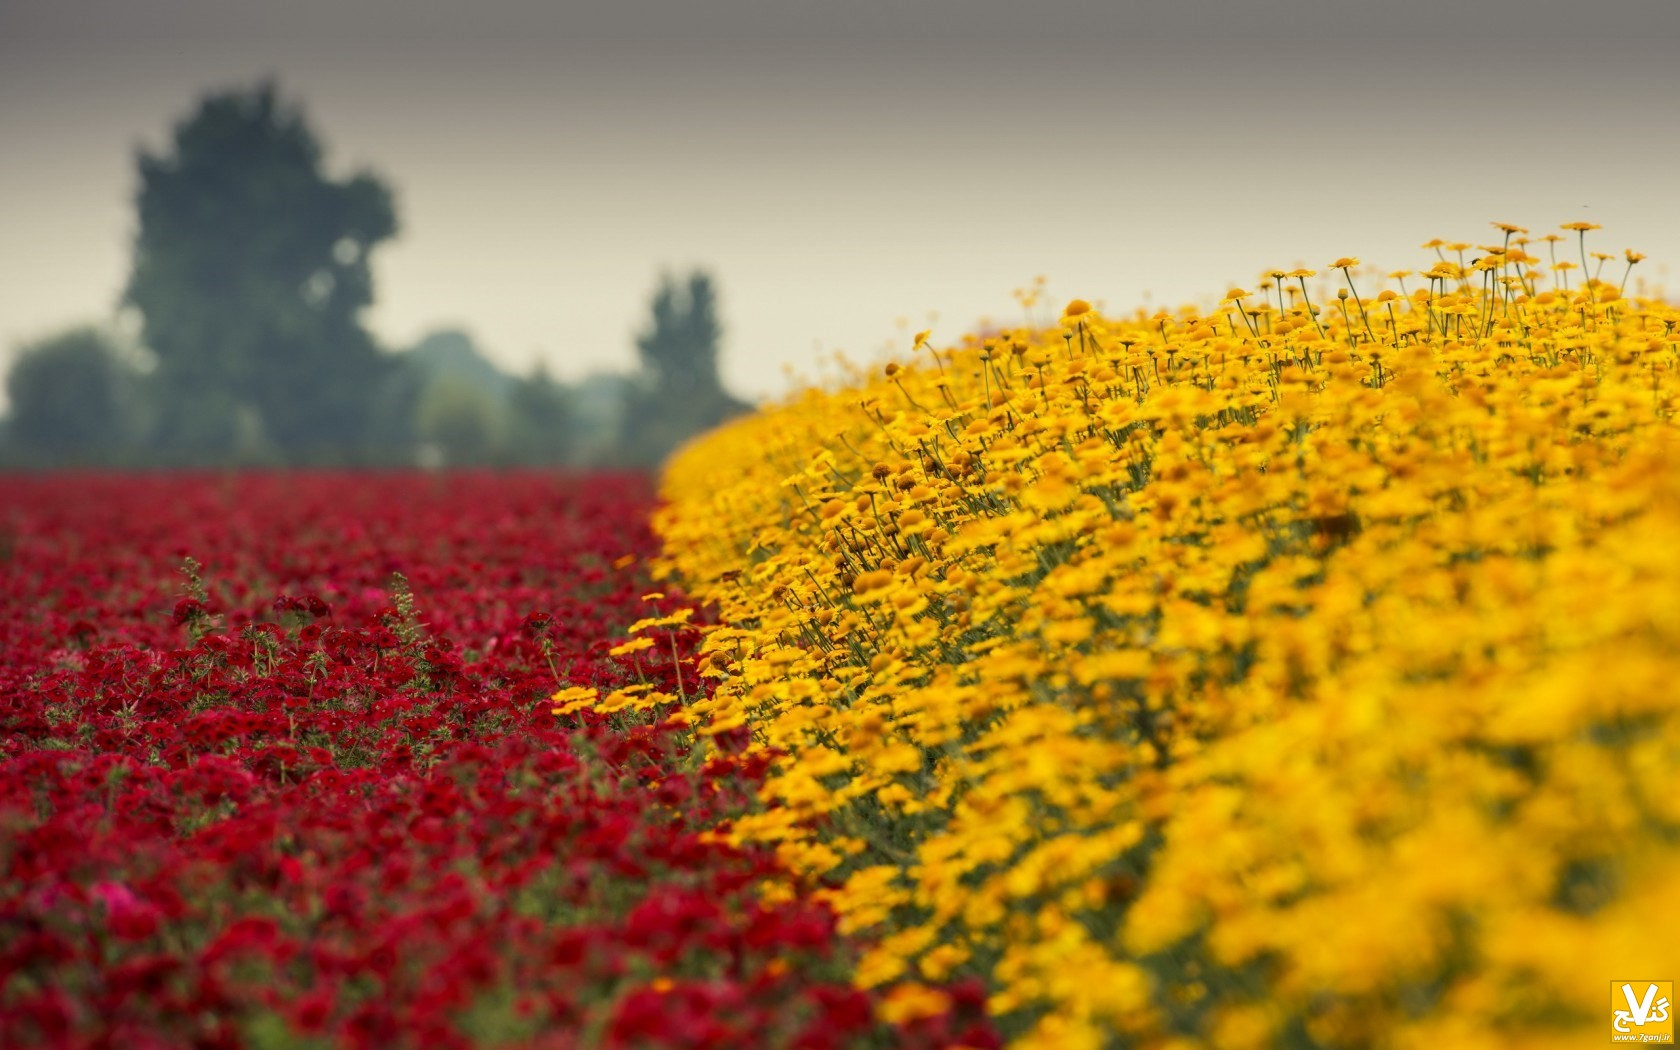 field-flowers-yellow-red-nature-wallpaper-1680x1050